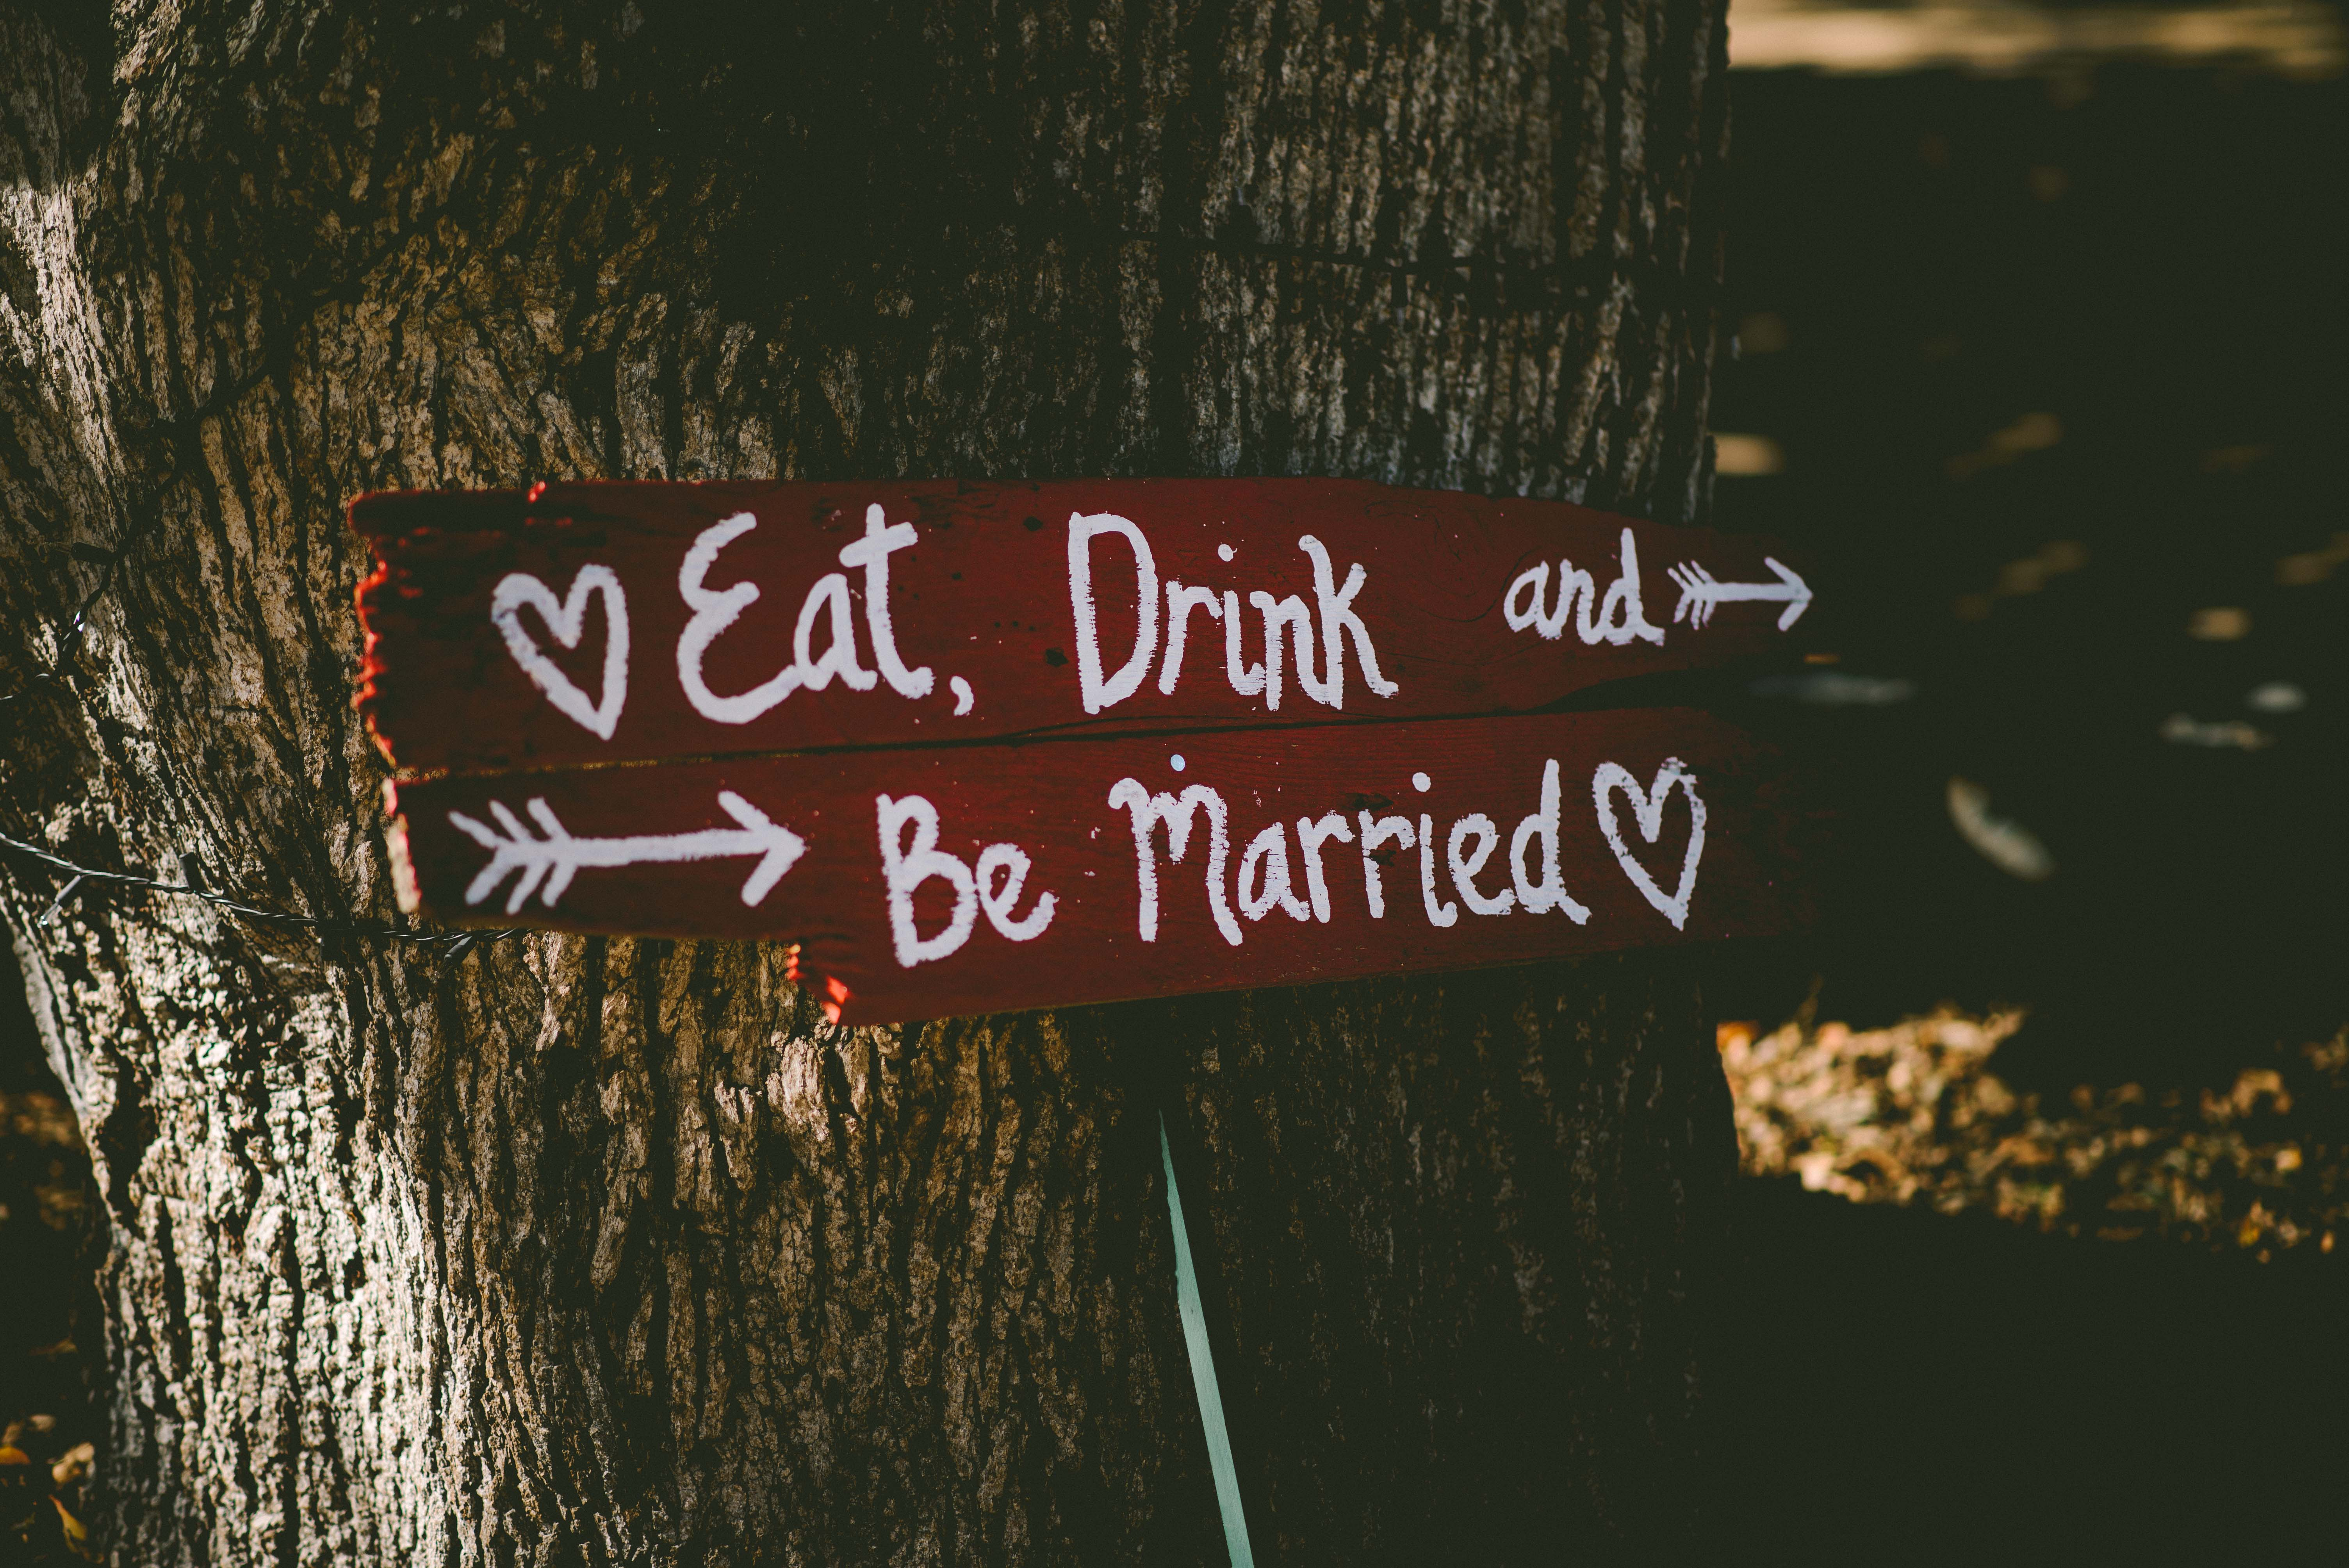 Weddings in Northern Virginia. Creative and Fun Wedding Phrases